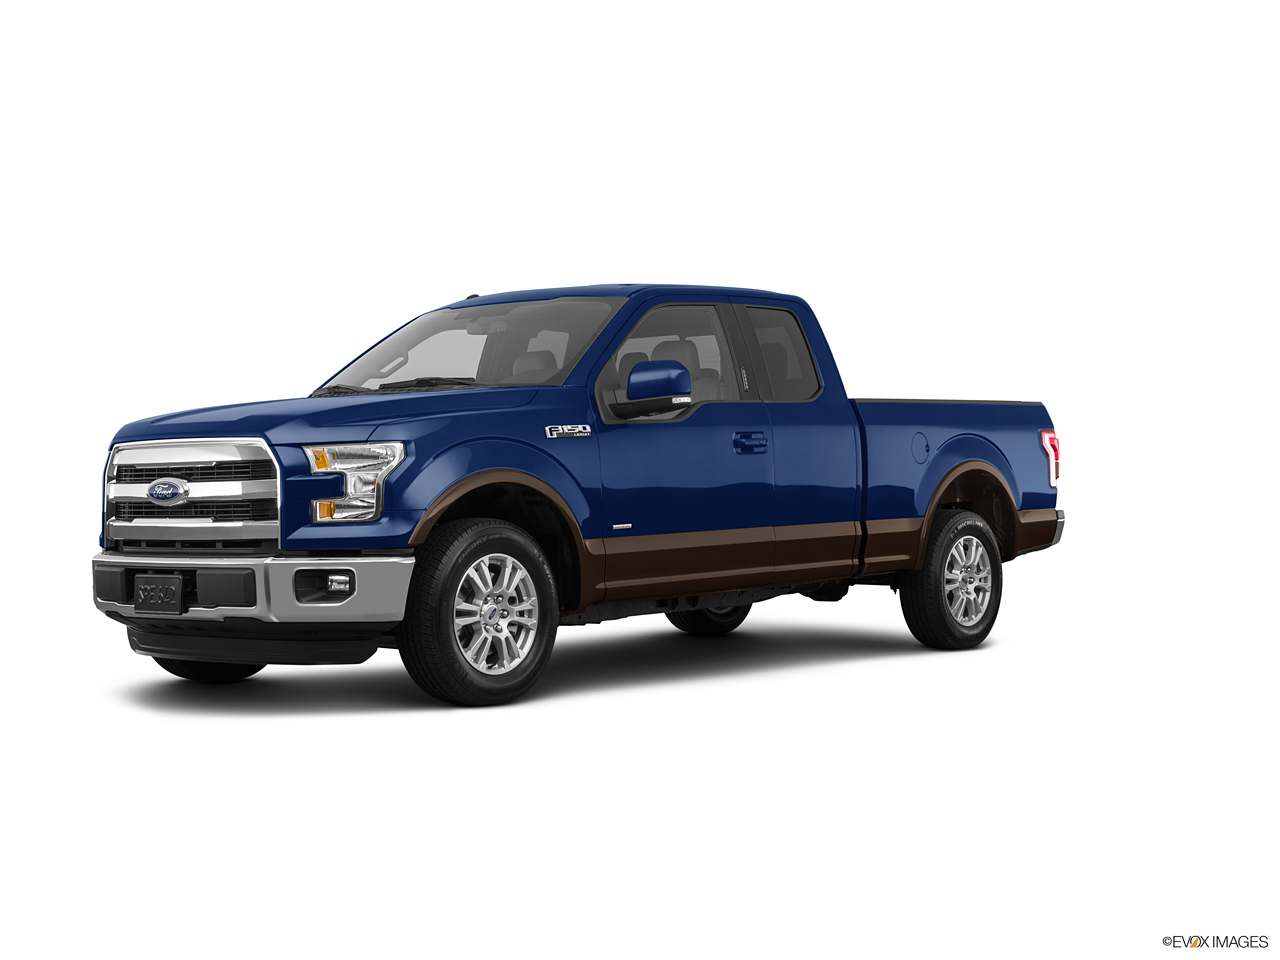 car features list for ford f 150 2017 5 0l super cab lariat fx4 luxury chrome pack uae. Black Bedroom Furniture Sets. Home Design Ideas